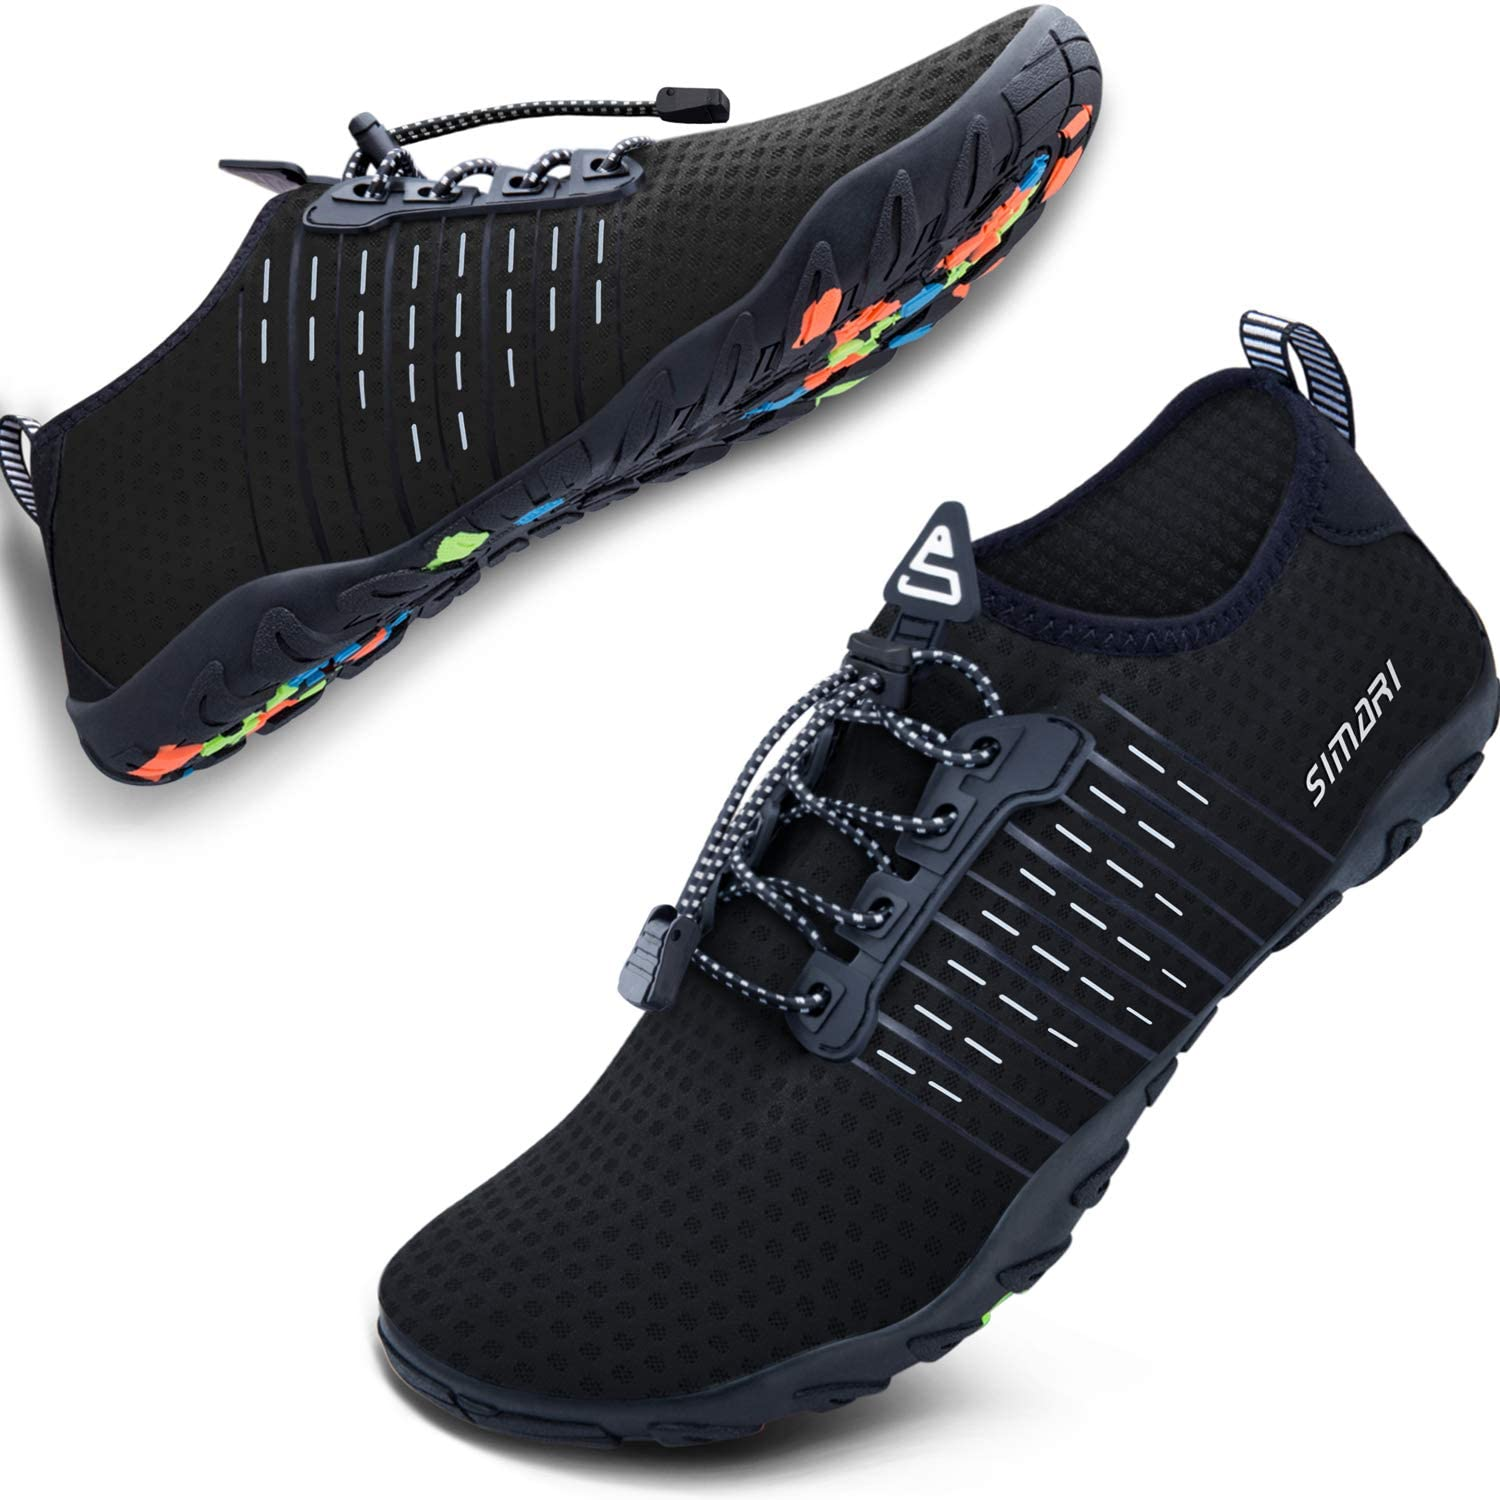 best water shoes for wet wading and fly fishing